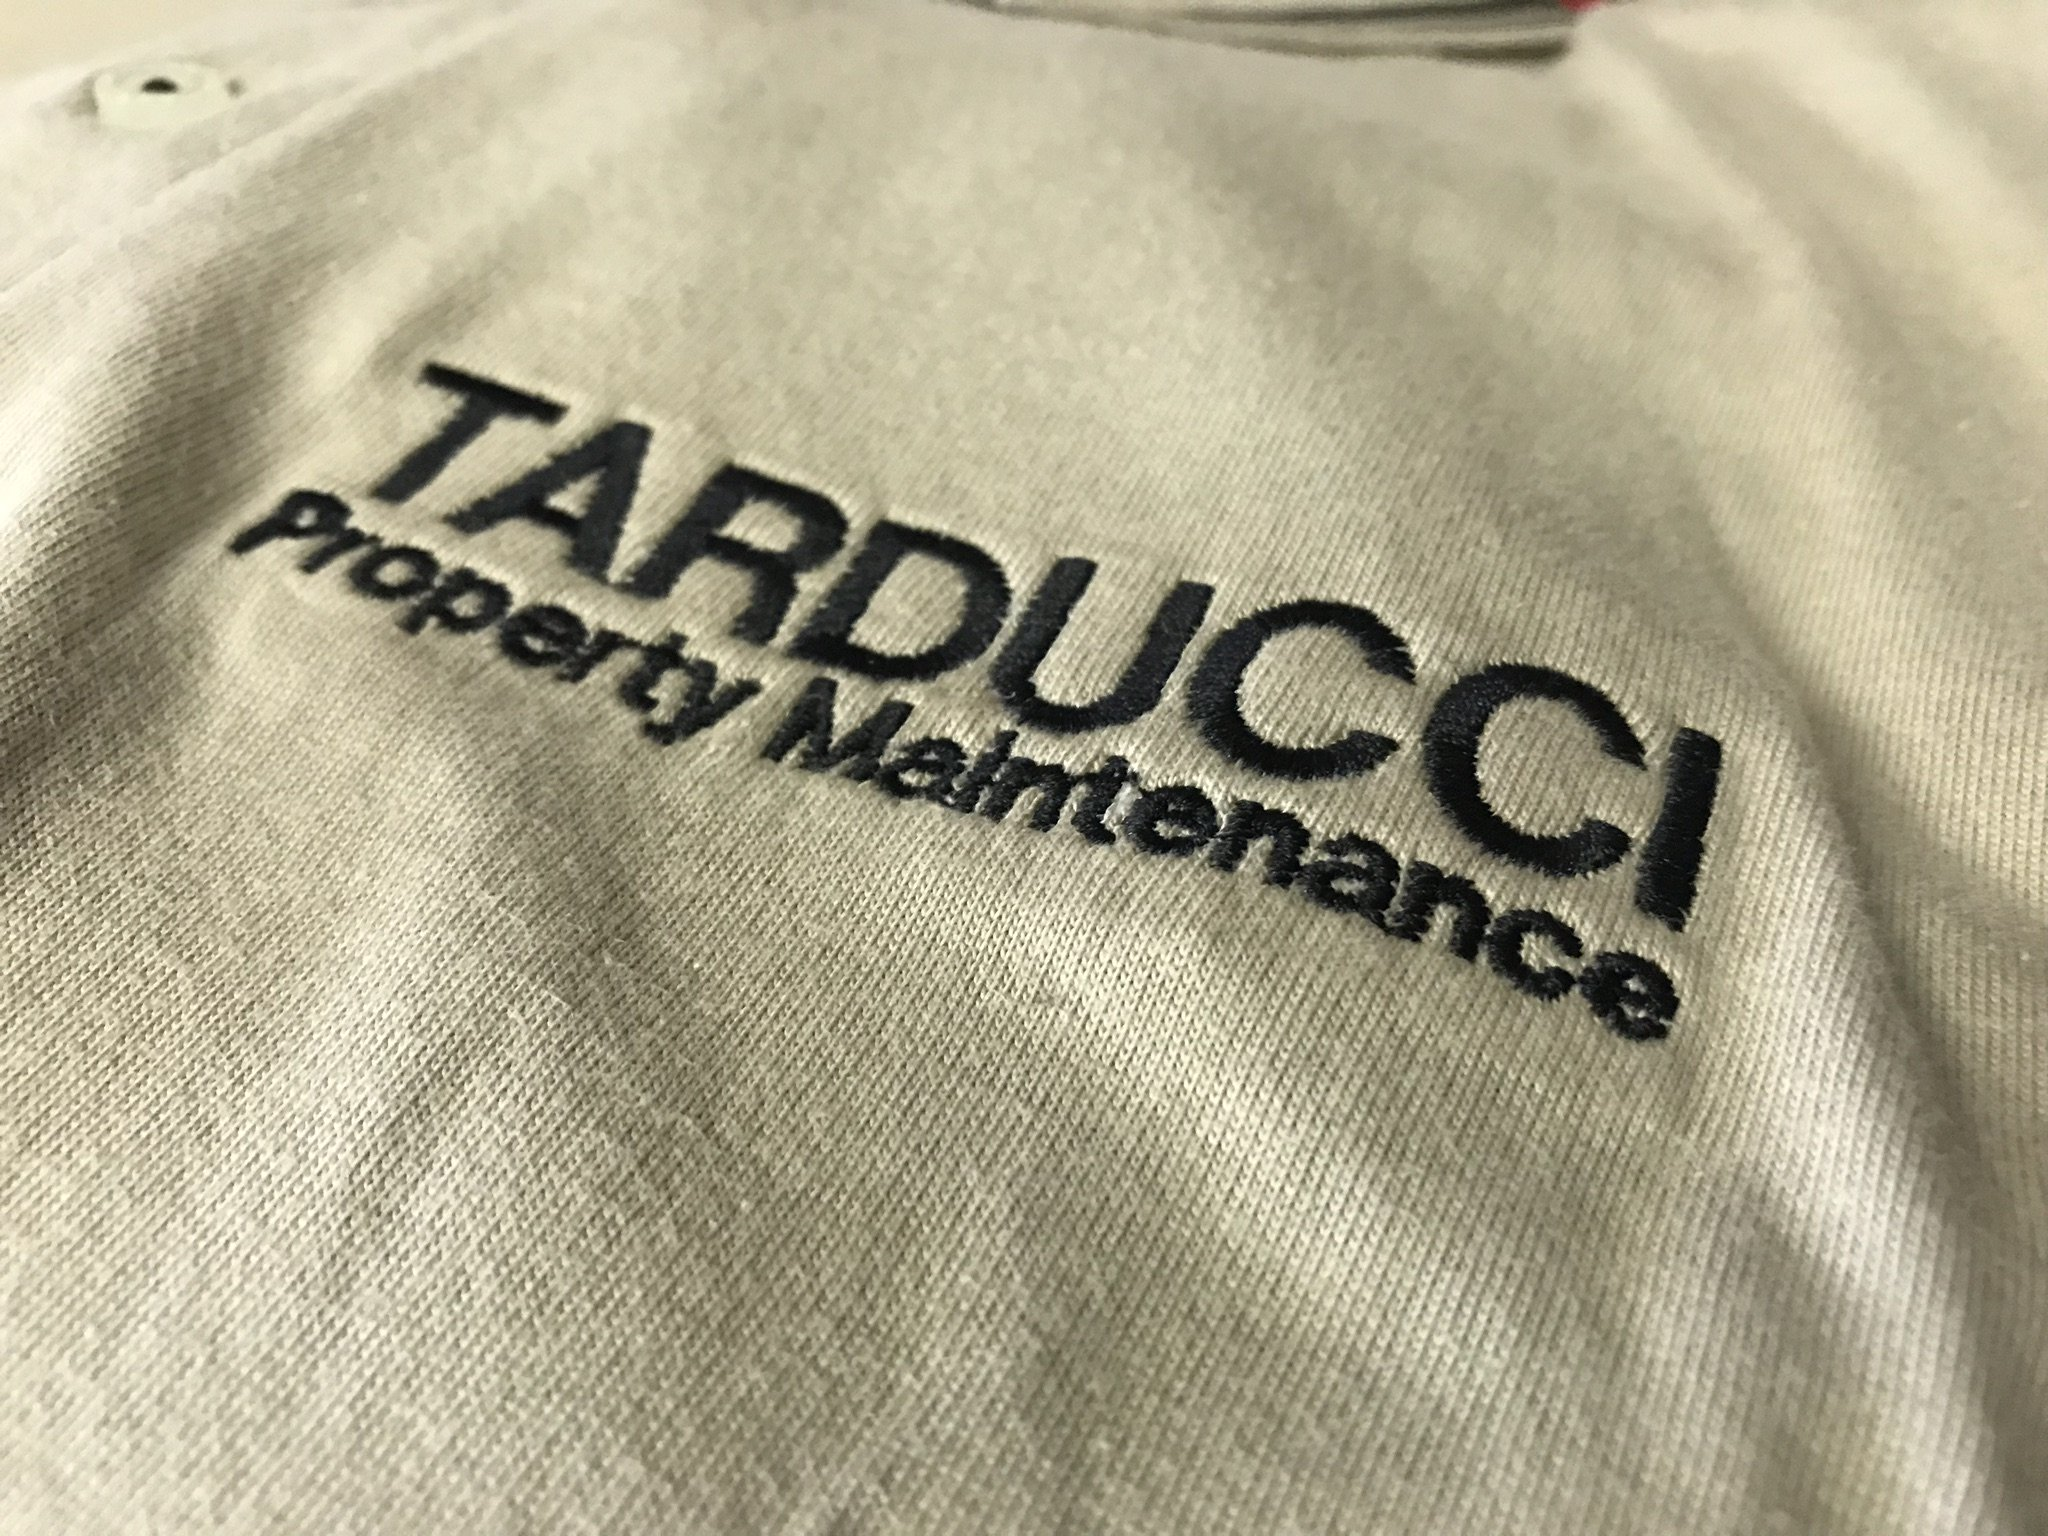 Tarducci Property Maintenance— Embroidered Company Tee's